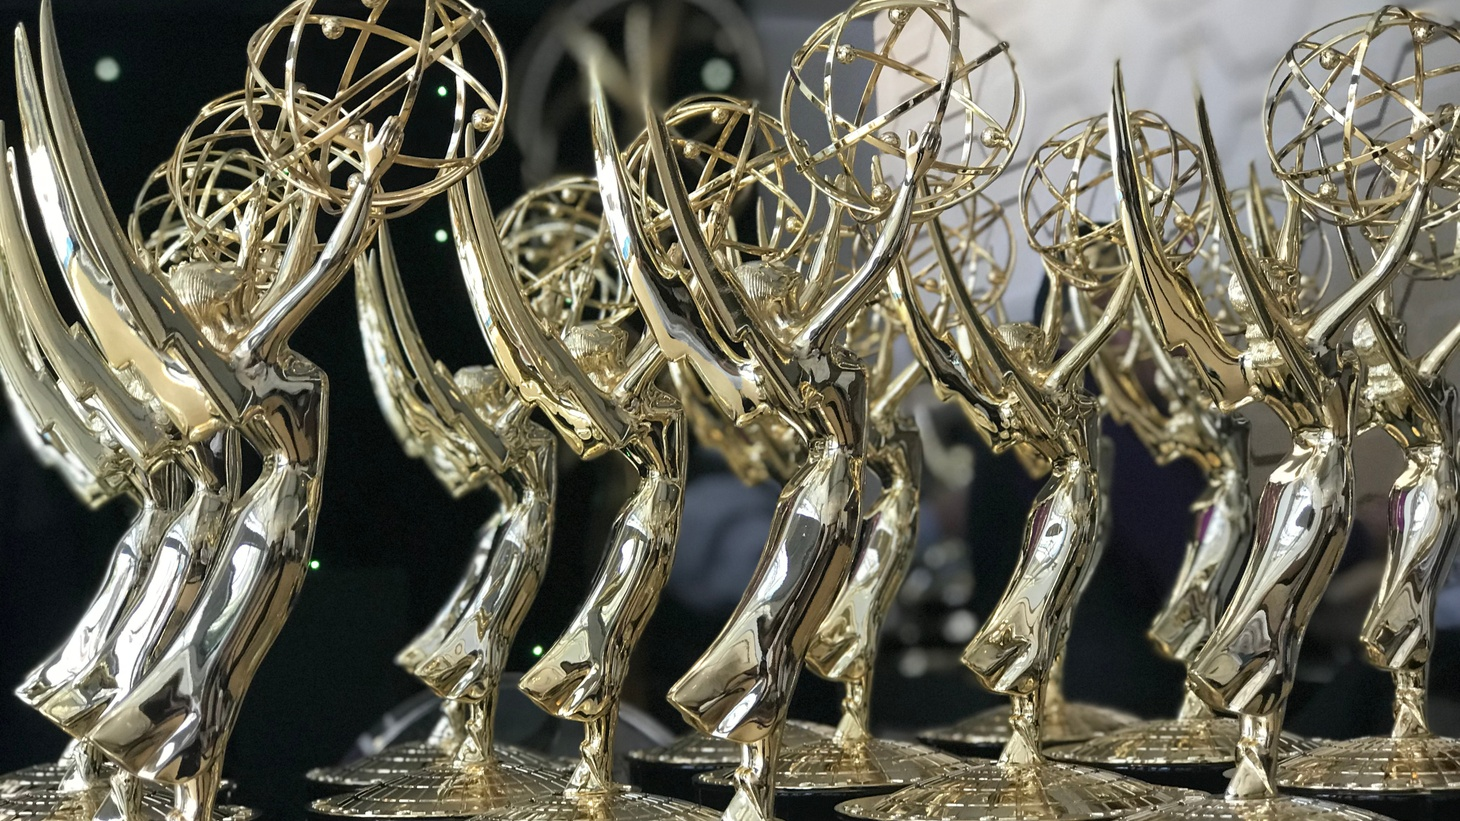 """The 2021 Emmy Award nominations were announced on July 13, with shows like """"The Mandalorian"""" and """"The Crown"""" sweeping major categories."""